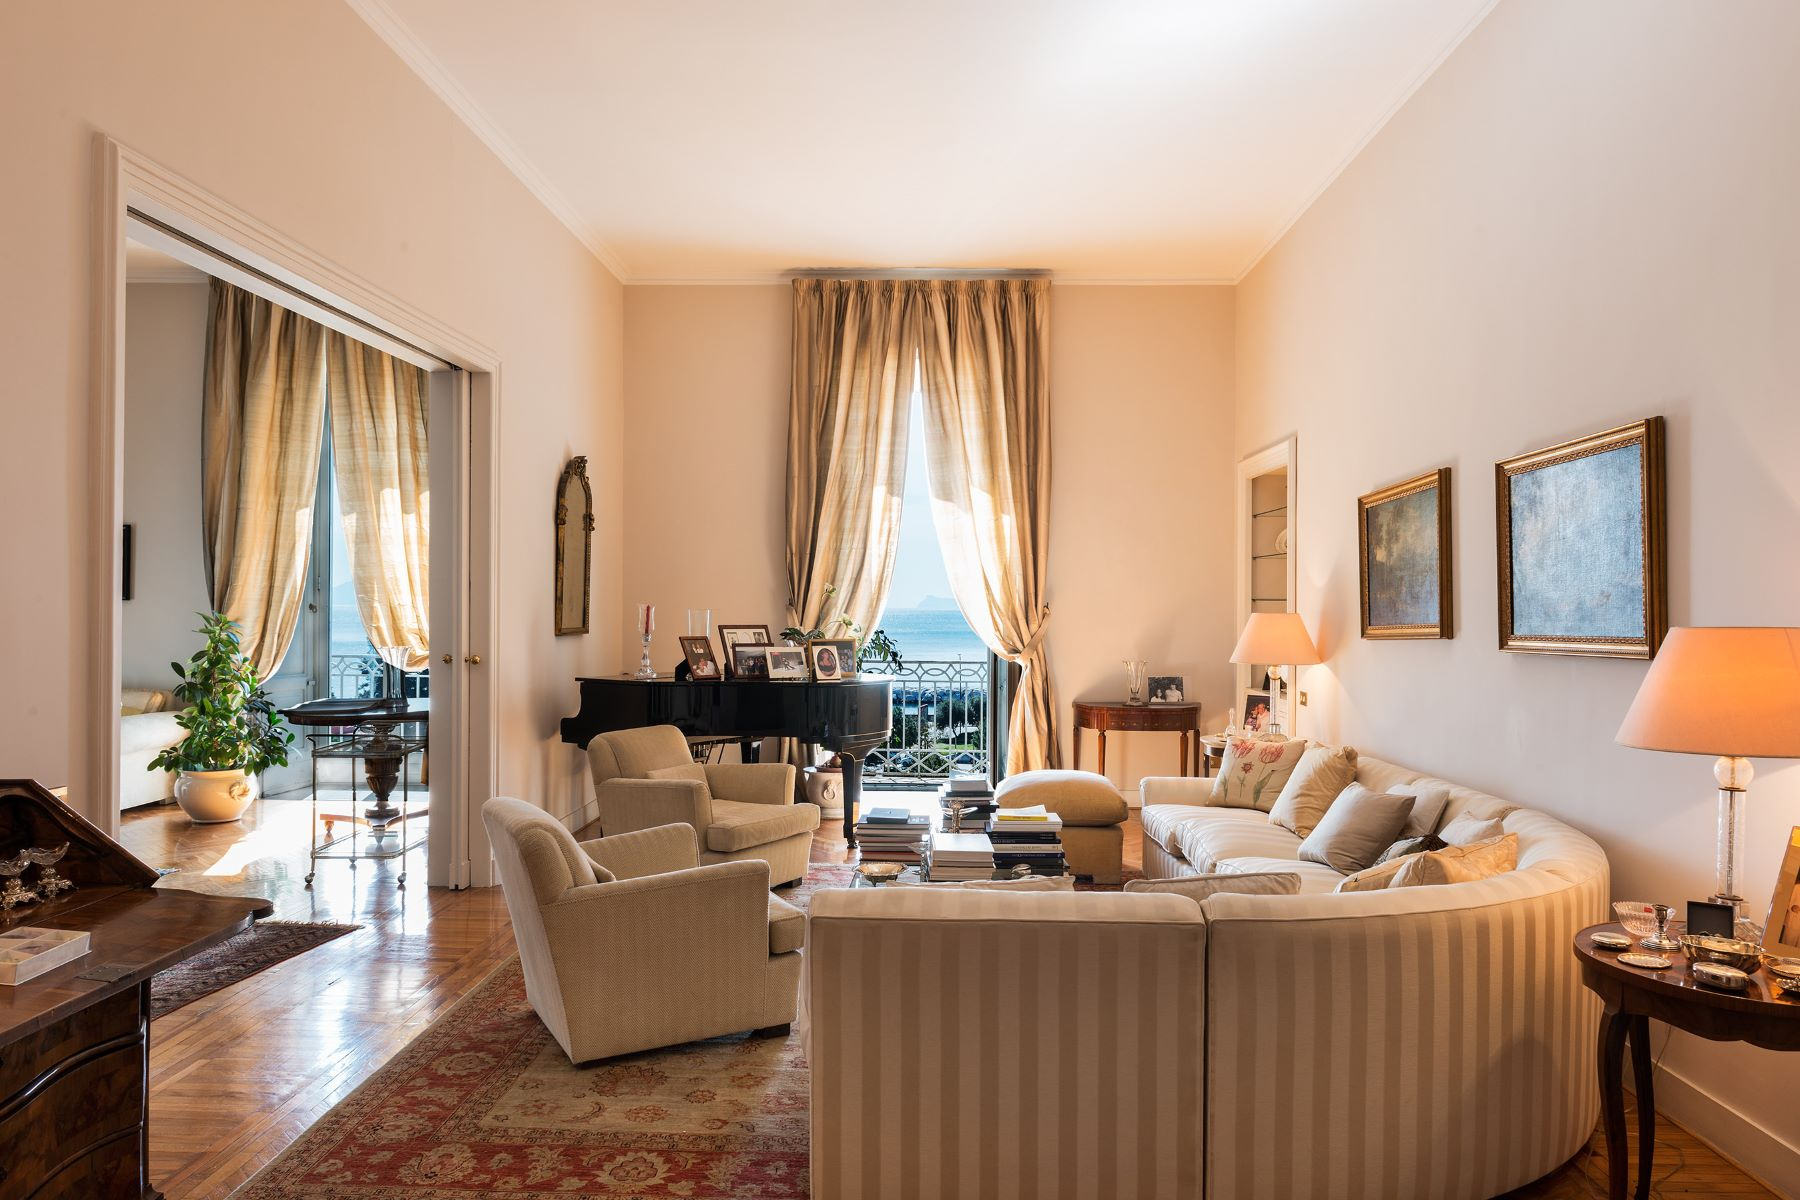 Apartment for Sale at Stylish apartment with sea views Via Rione Sirignano Napoli, 80121 Italy